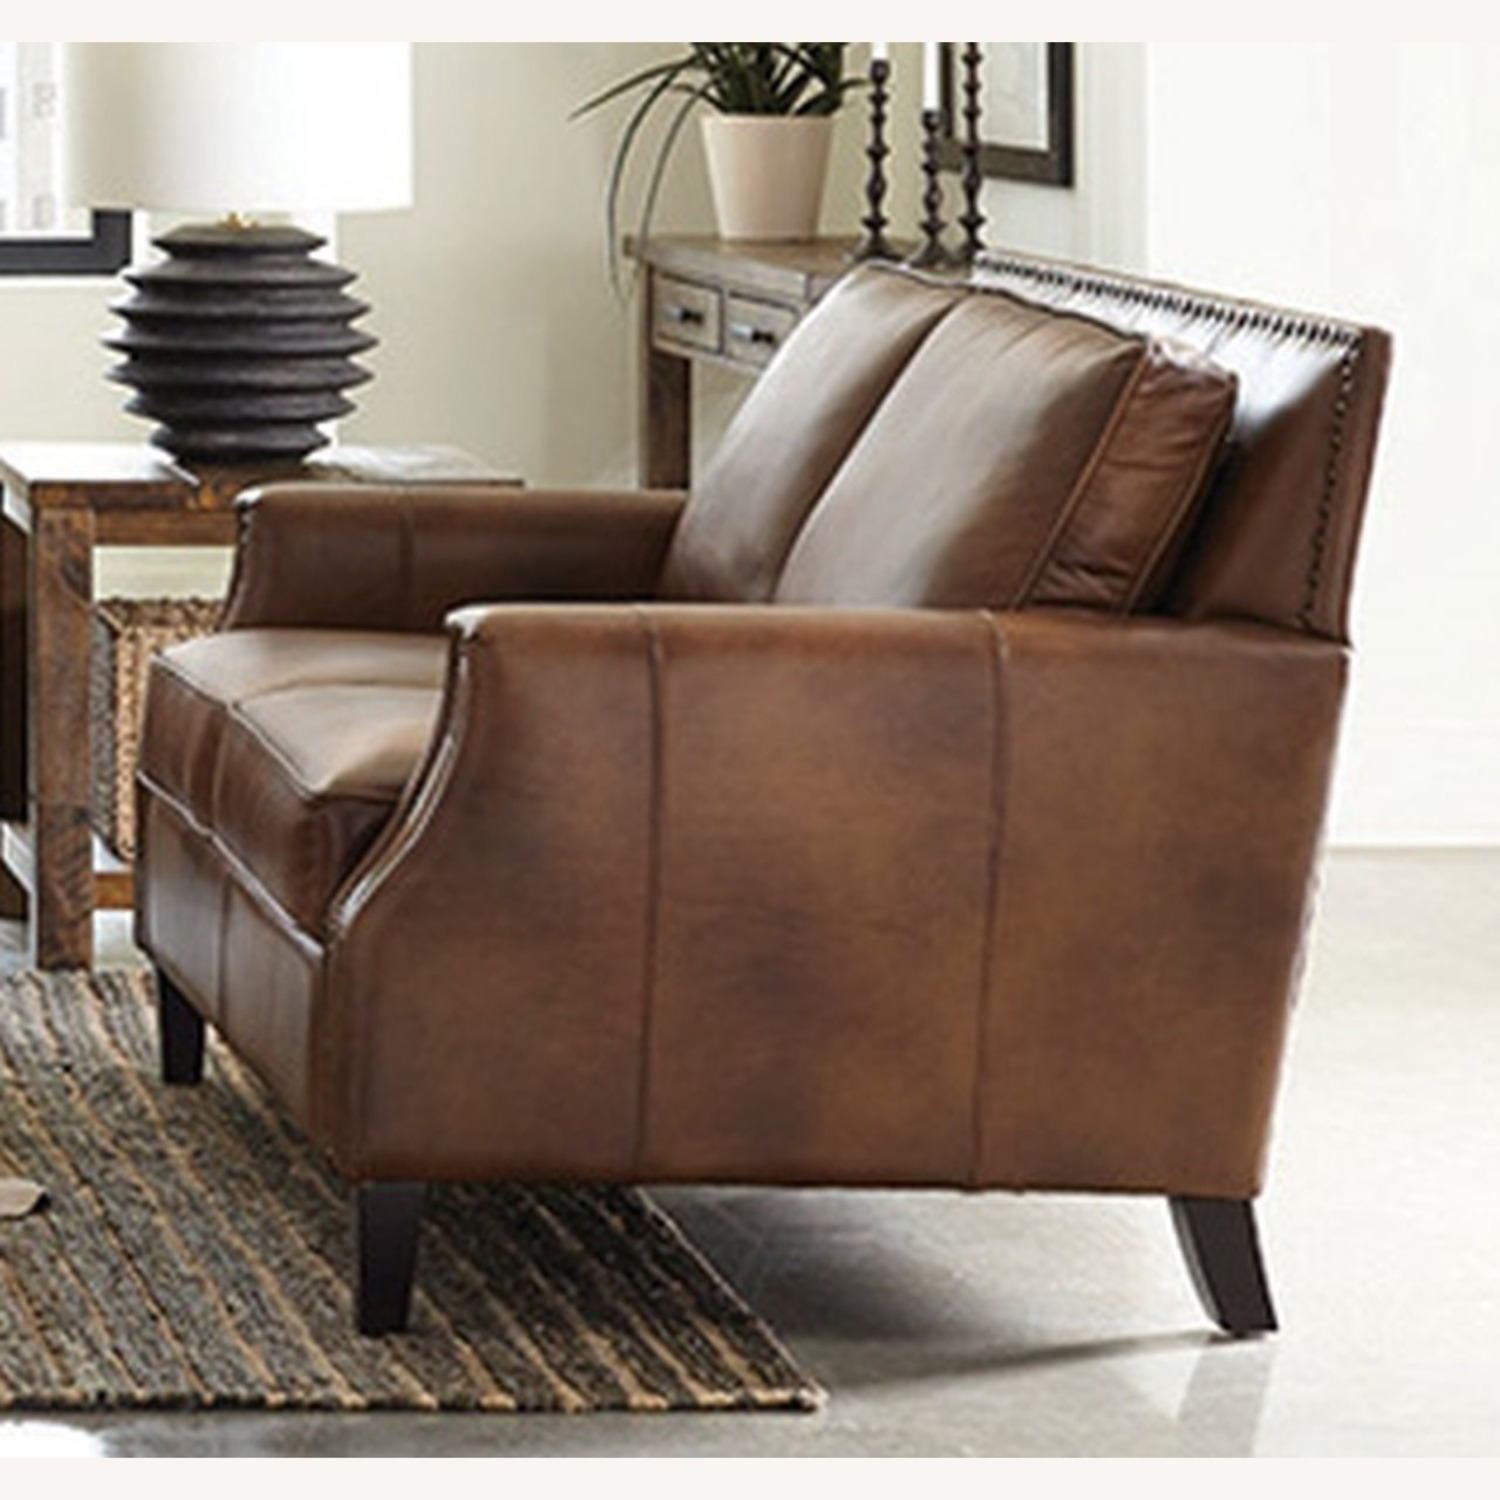 Loveseat In Brown Sugar Leather Upholstery - image-1